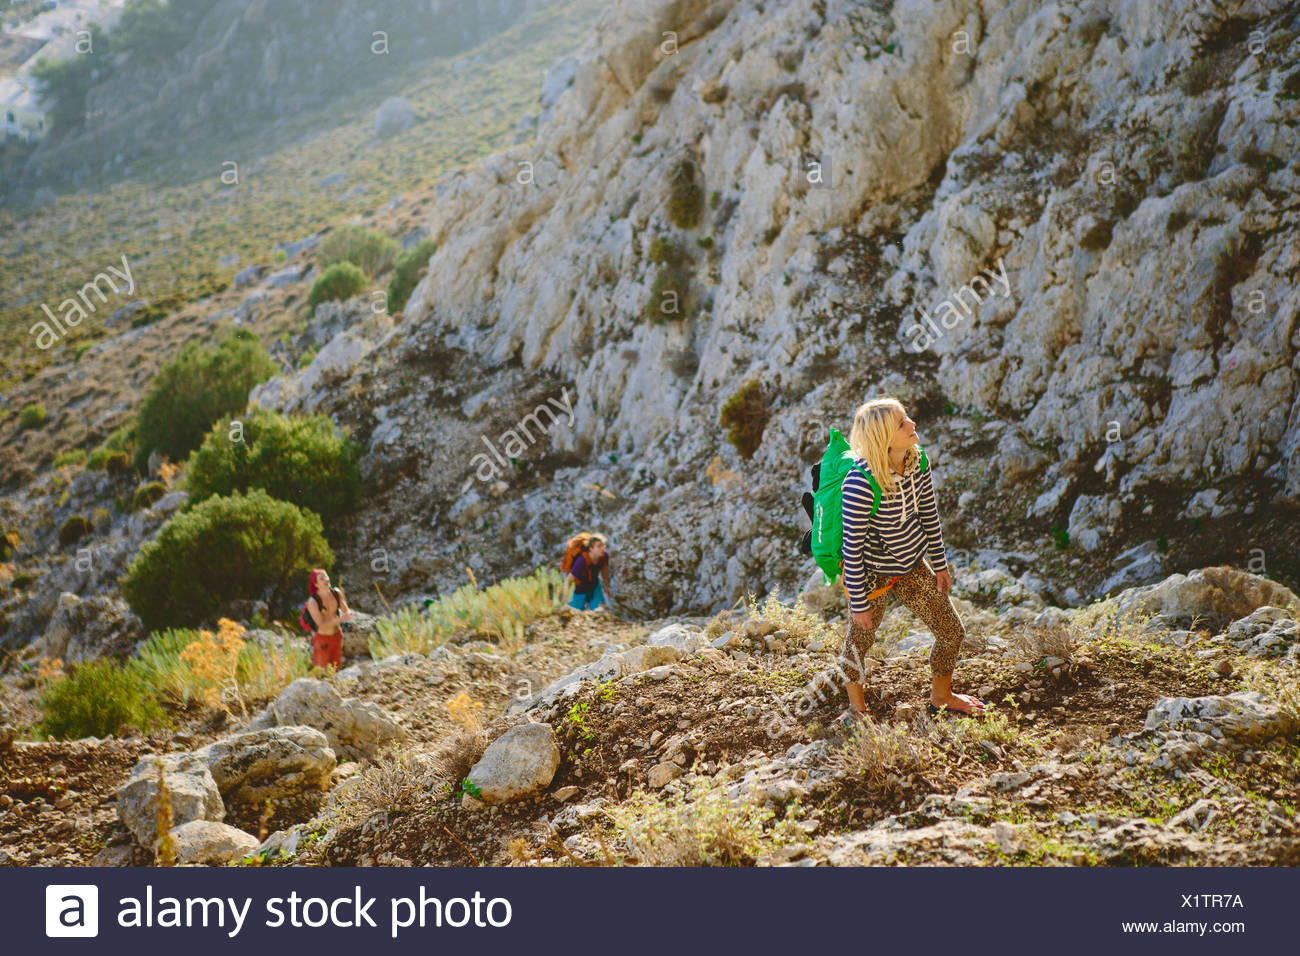 Greece, Dodecanese, Kalymnos, Young woman exploring mountains - Stock Image